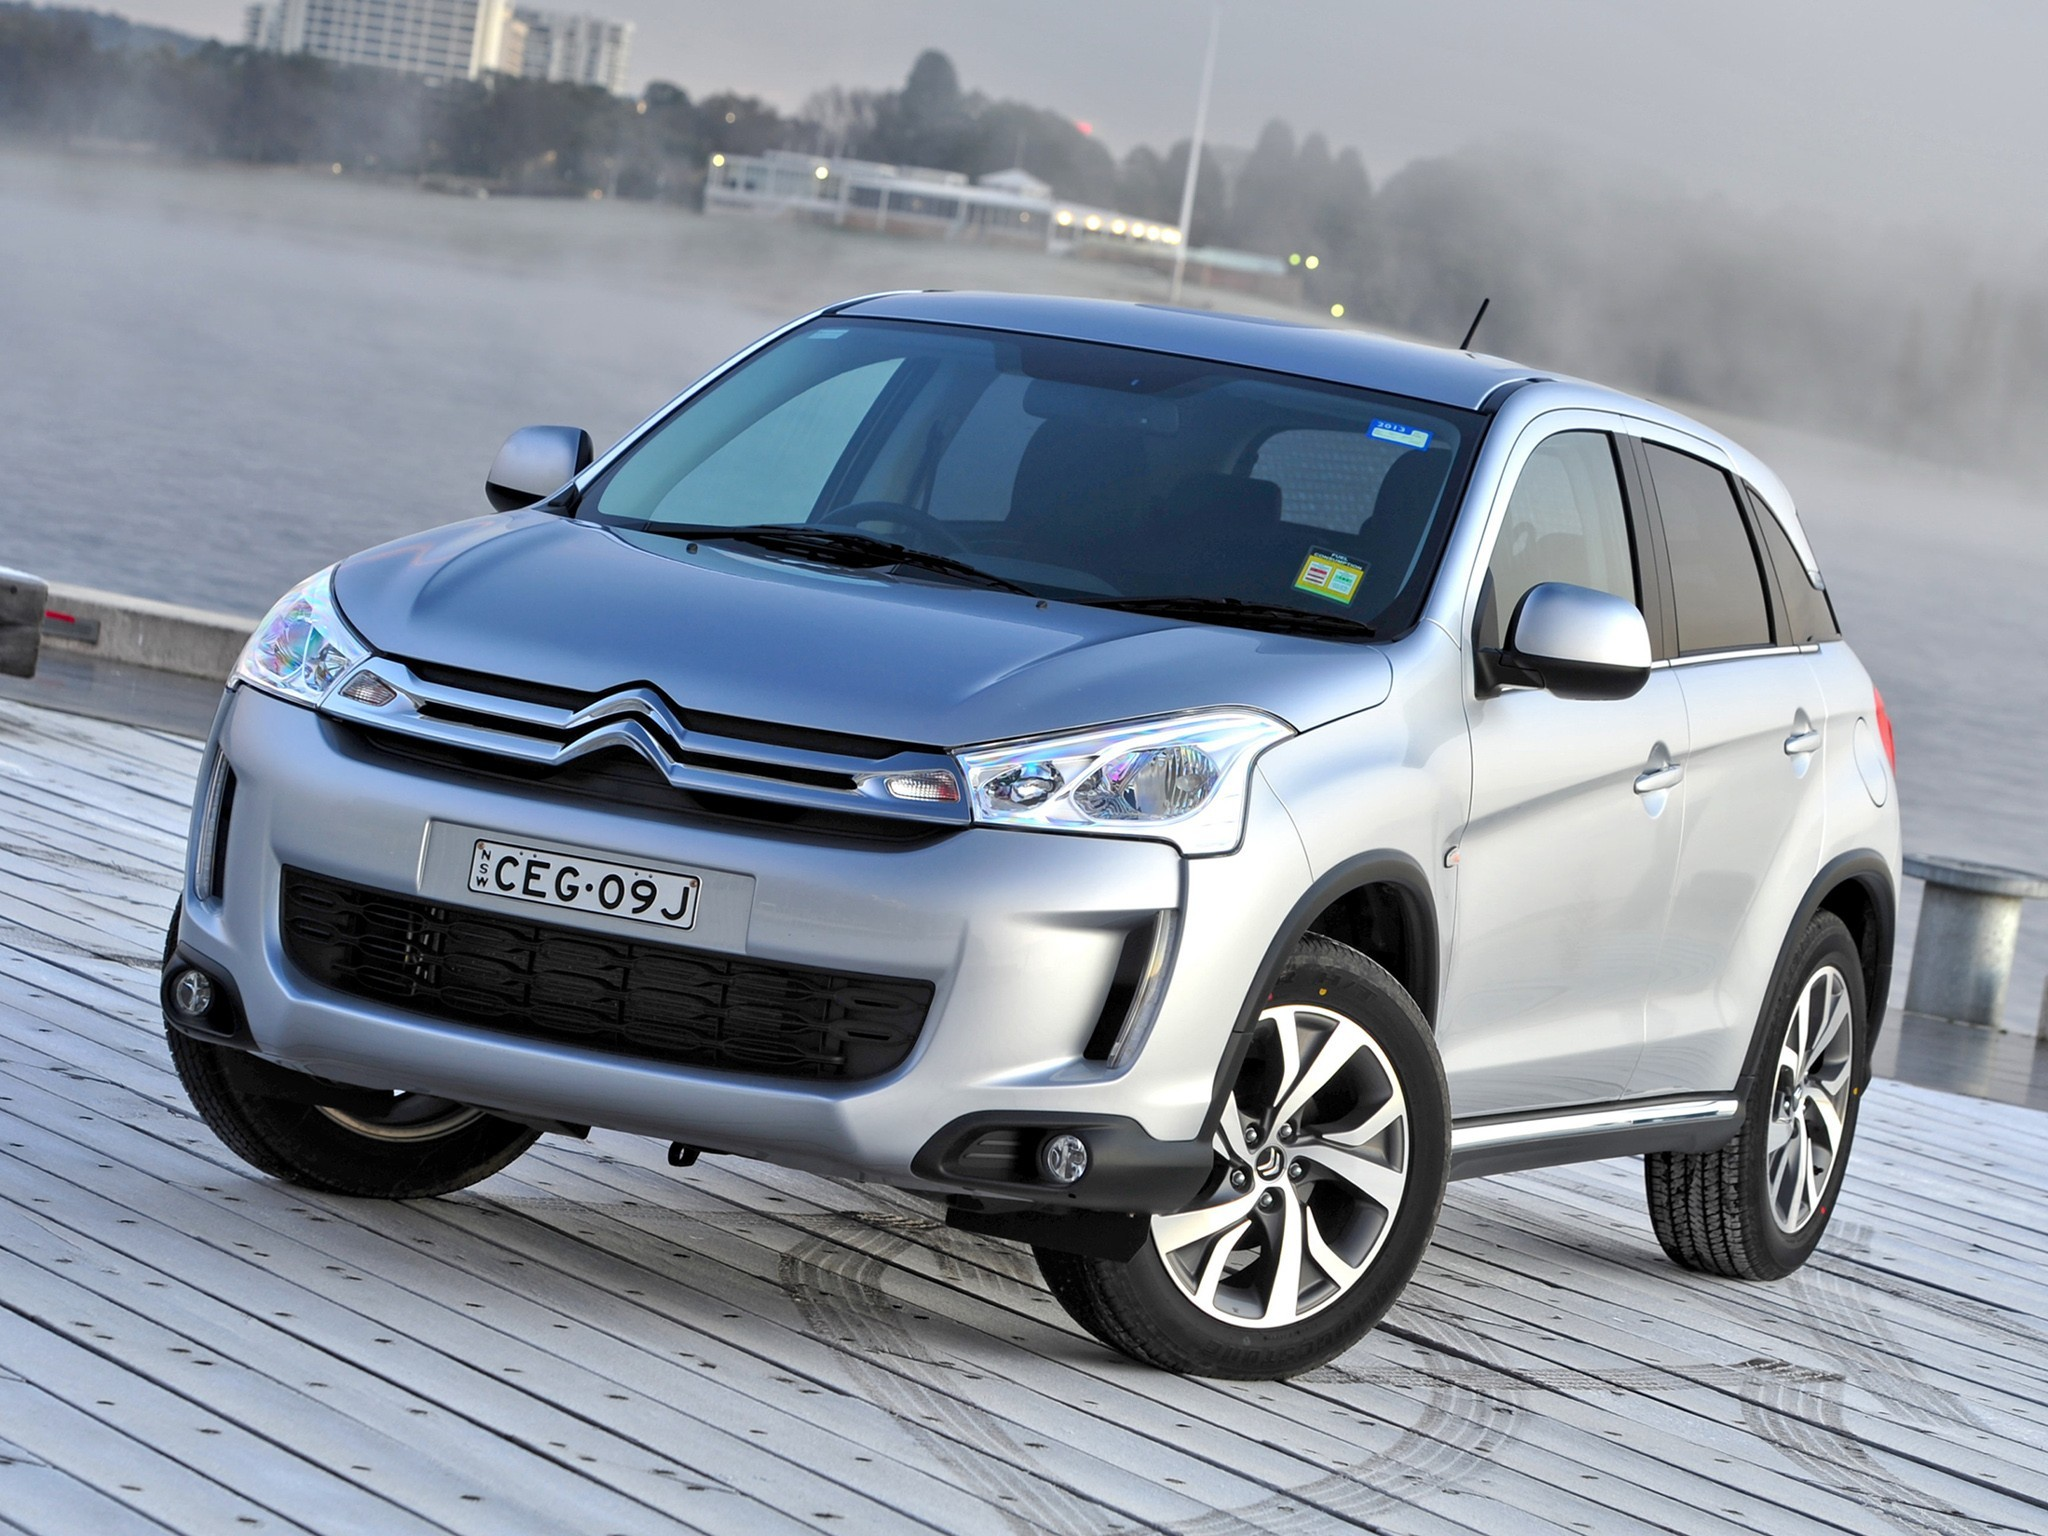 Citroen C4 Aircross - specifications, photo, video ...